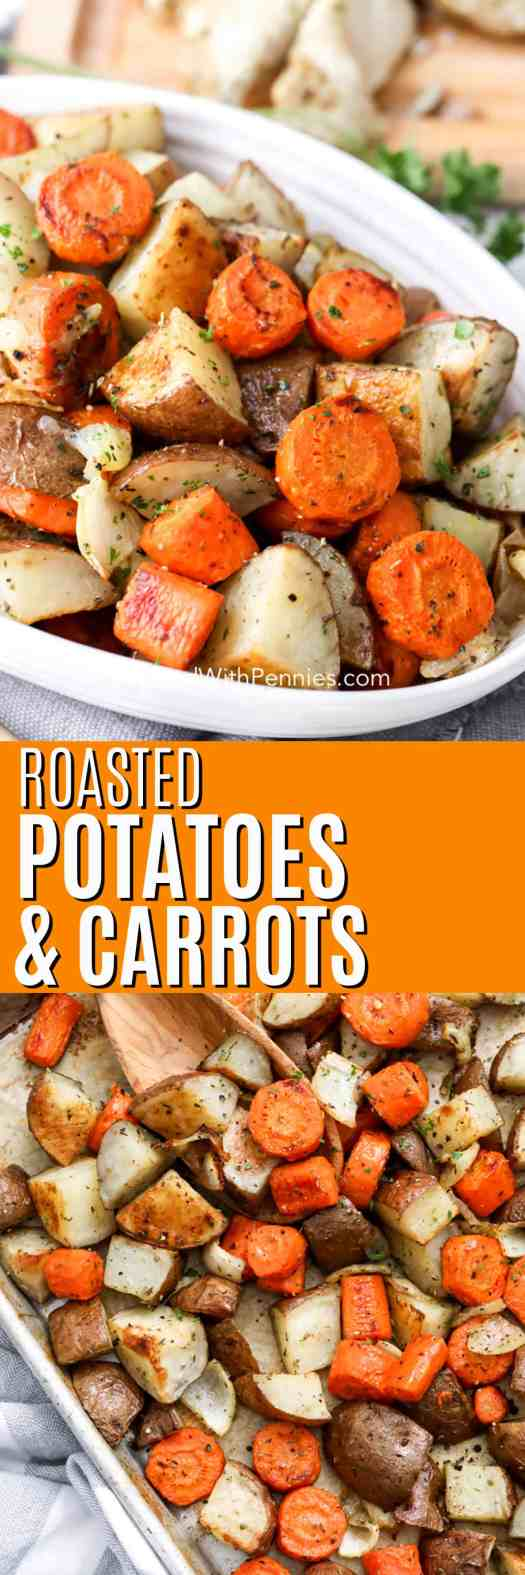 Top photo - A serving dish with roasted potatoes and carrots, garnished with parsley. Bottom photo - Roasted potatoes and carrots on a baking tray.